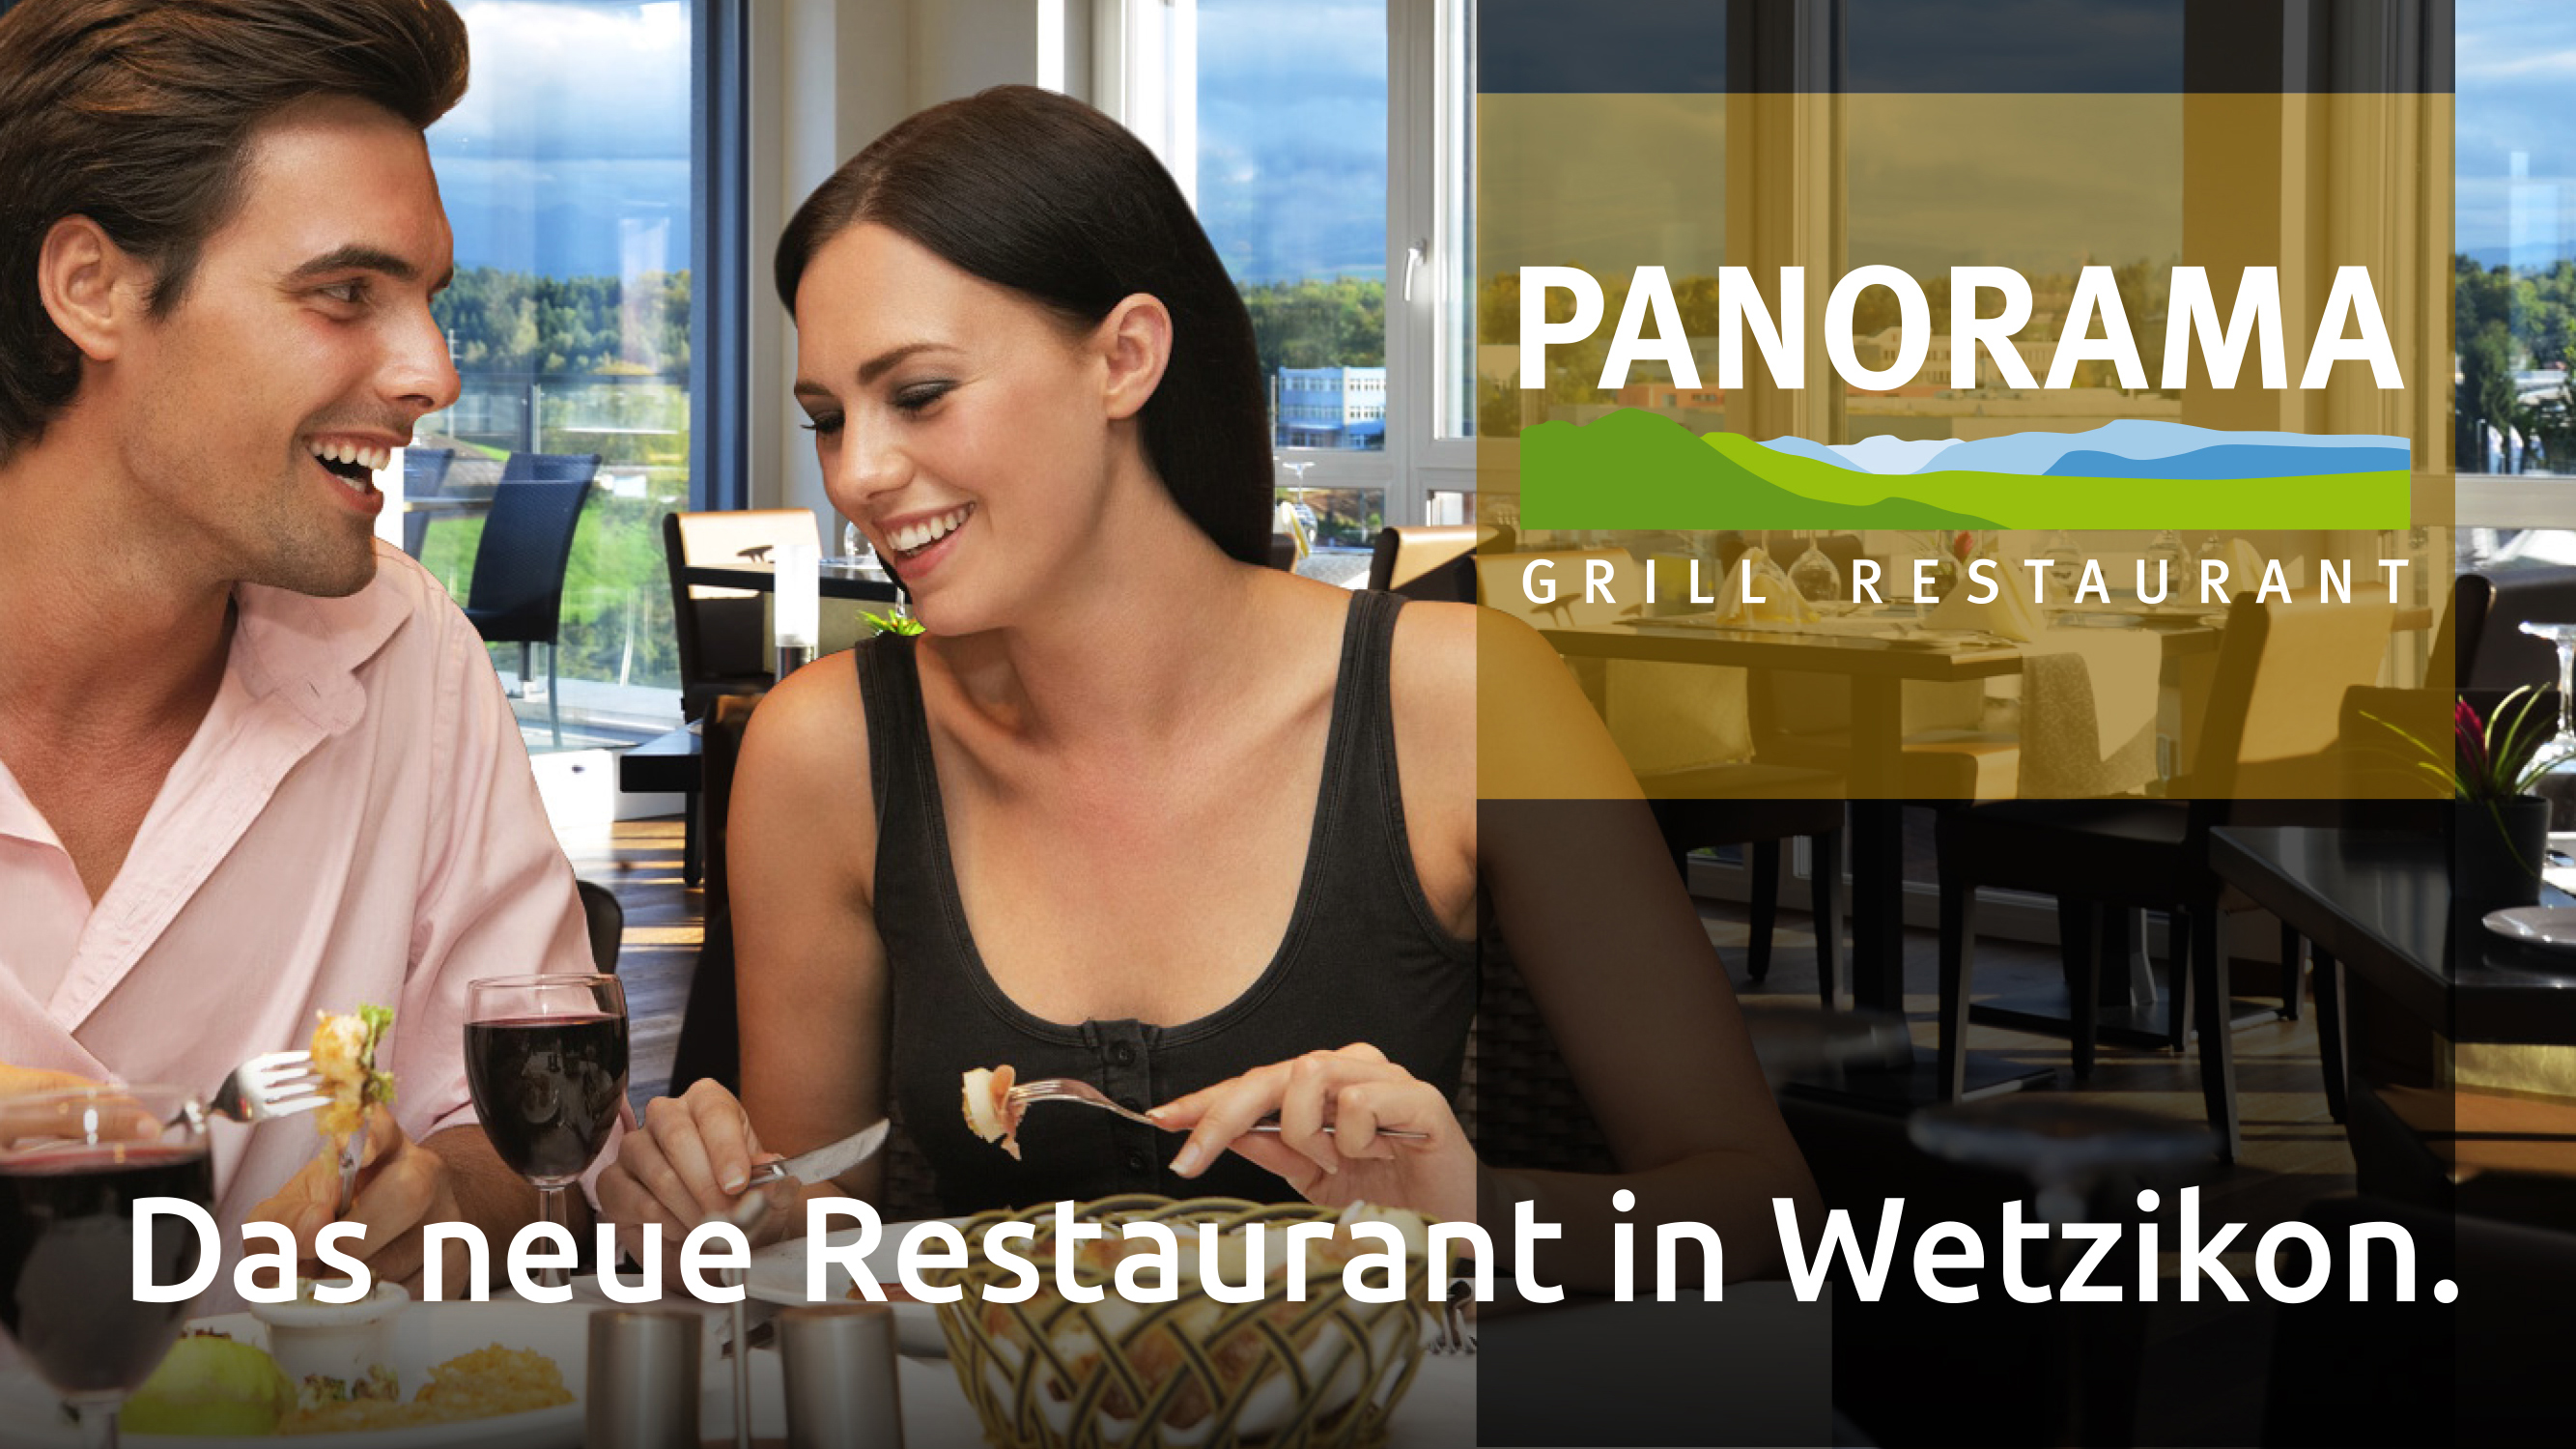 "<a href=""http://www.hotel-swiss-star.ch"" target=""_blank"">Panorama Restaurant</a>"